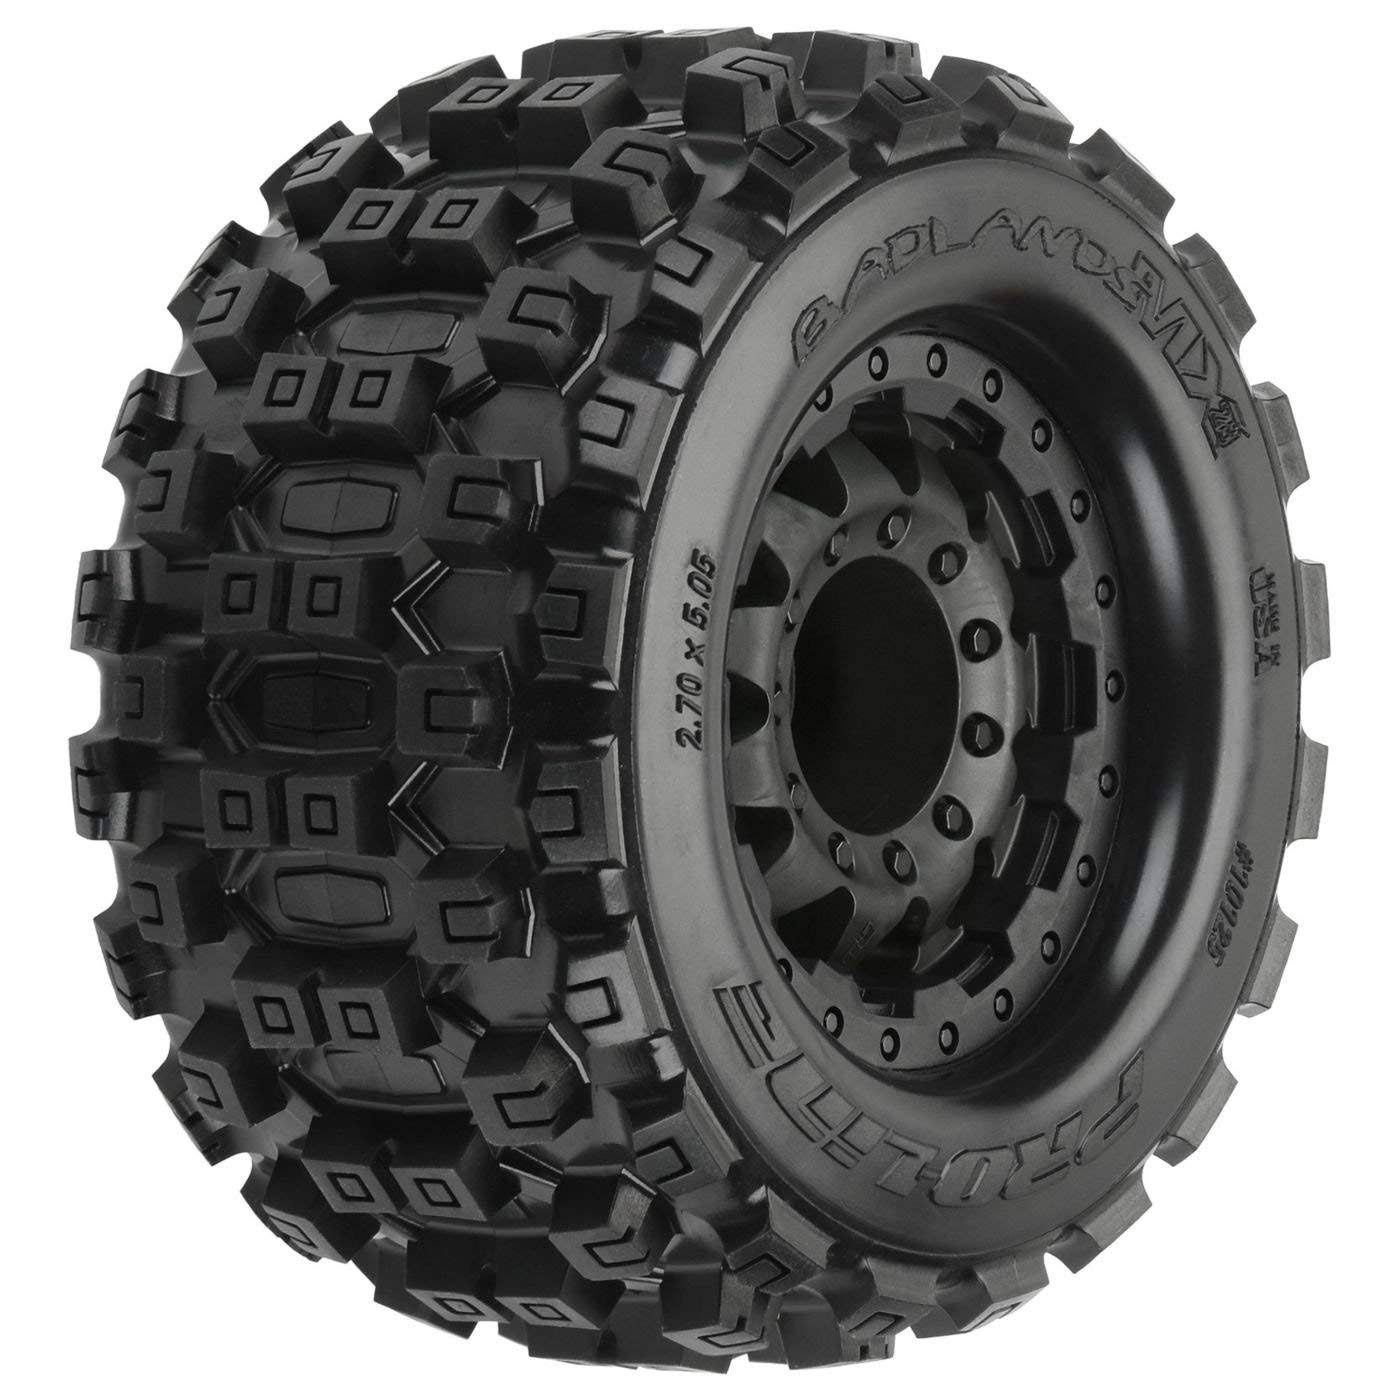 Badlands MX28 2.8 MTD F-11 17mm PRO-MT 4x4